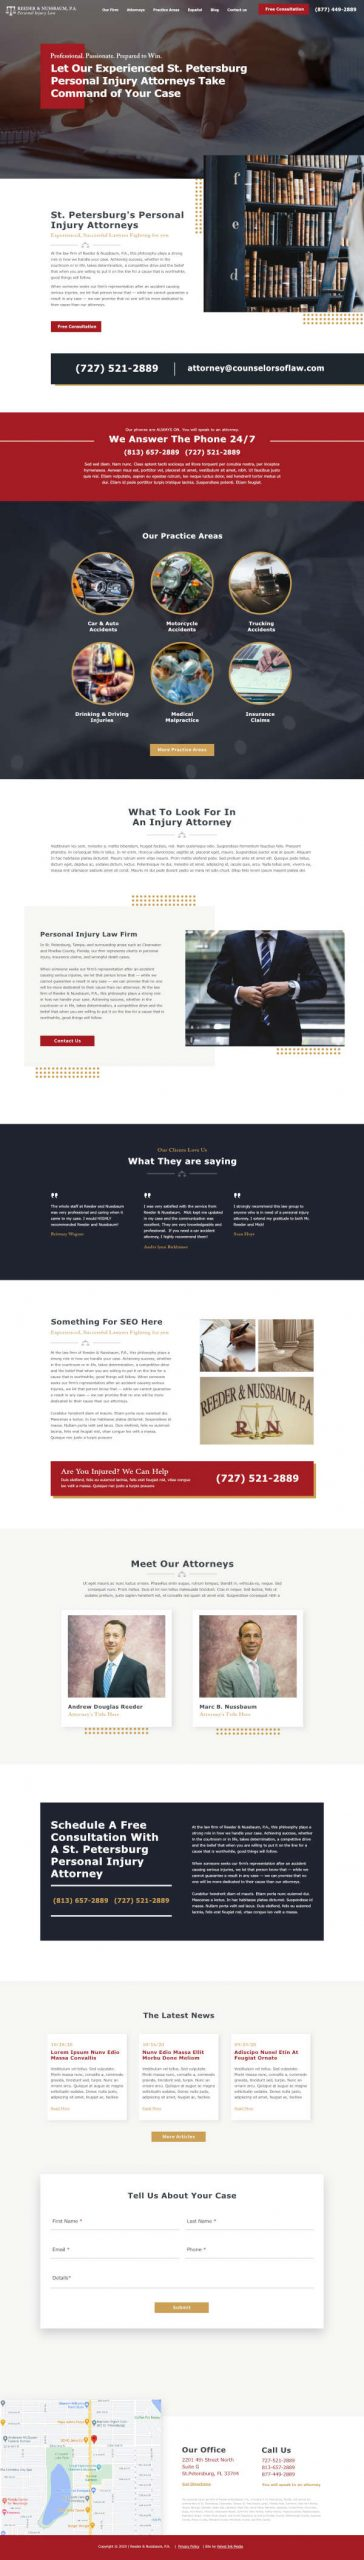 fields and table department page design